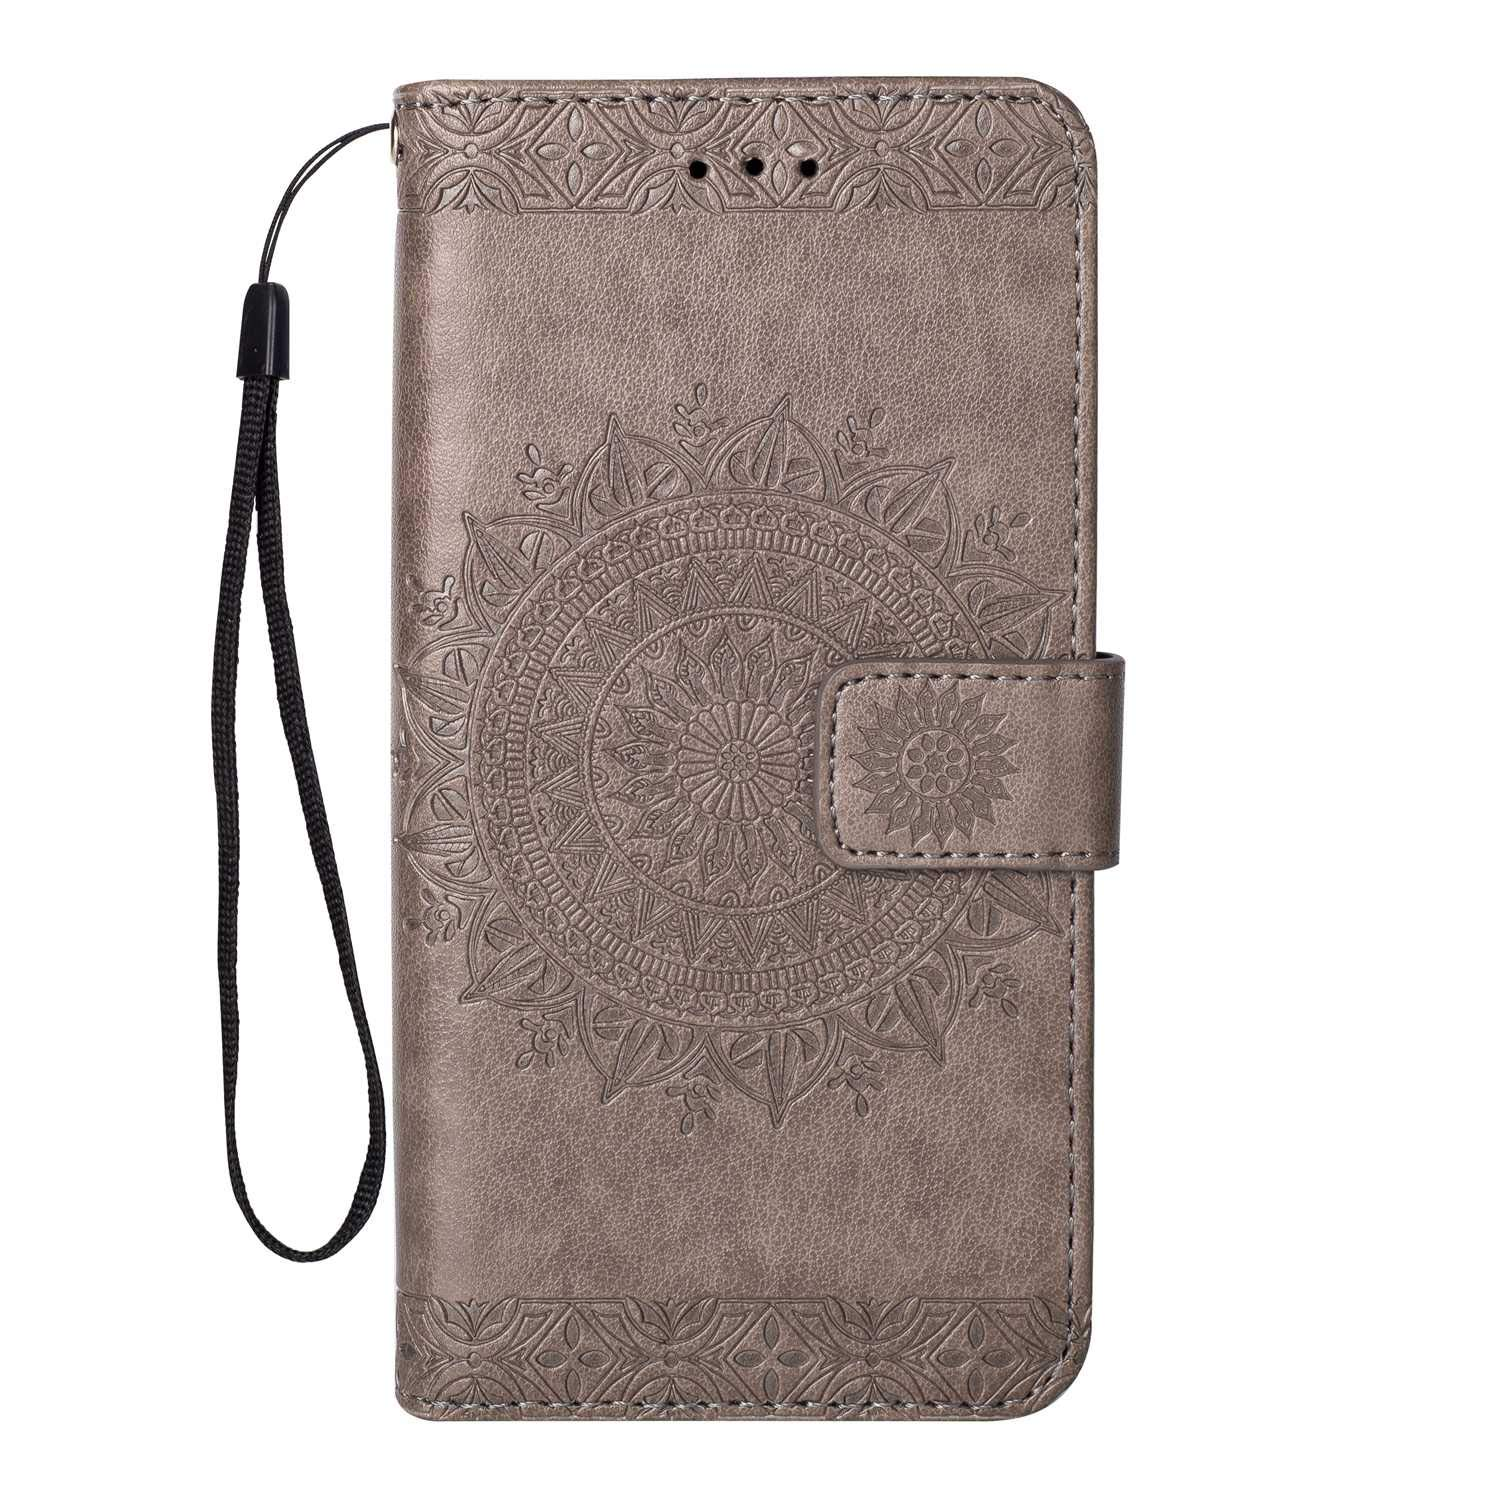 UNEXTATI Mandala Embossed Design Slim PU Leather Flip Wallet Cover Case with Wrist Strap Card Slot Rose Red Magnetic Closure and Kickstand iPhone 7 // iPhone 8 Case